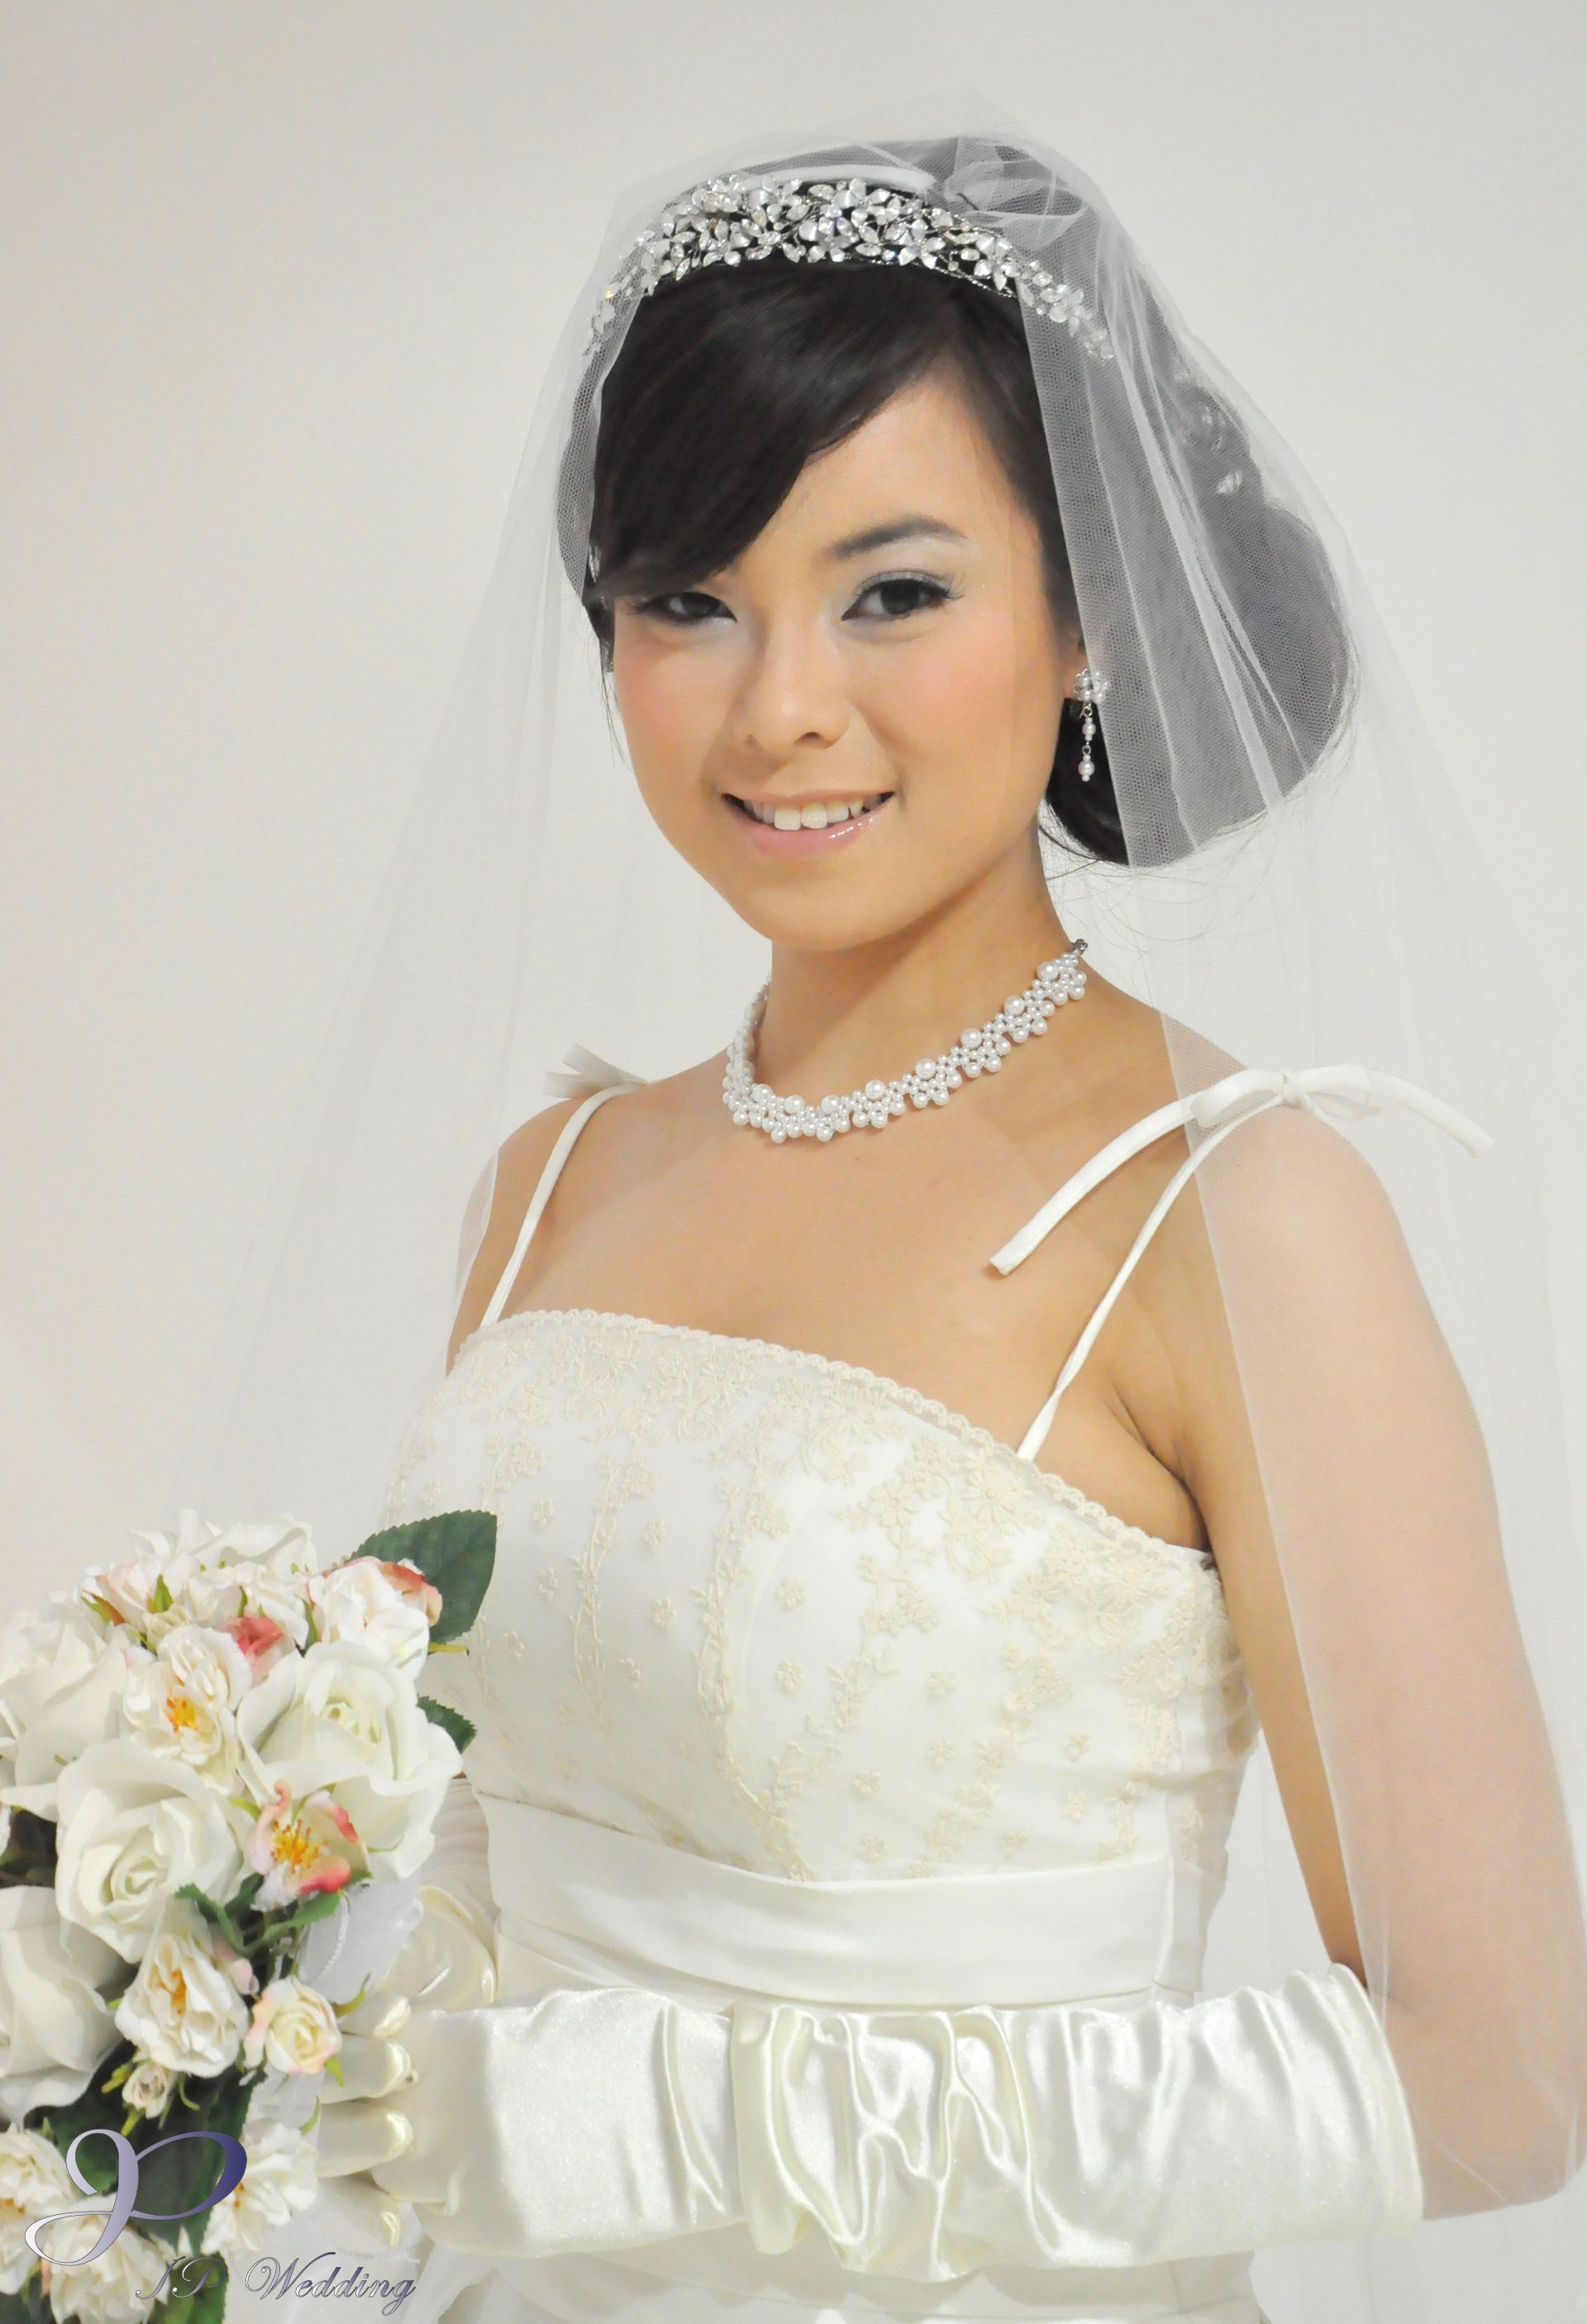 JP Wedding Bridal Makeup日式新娘造型